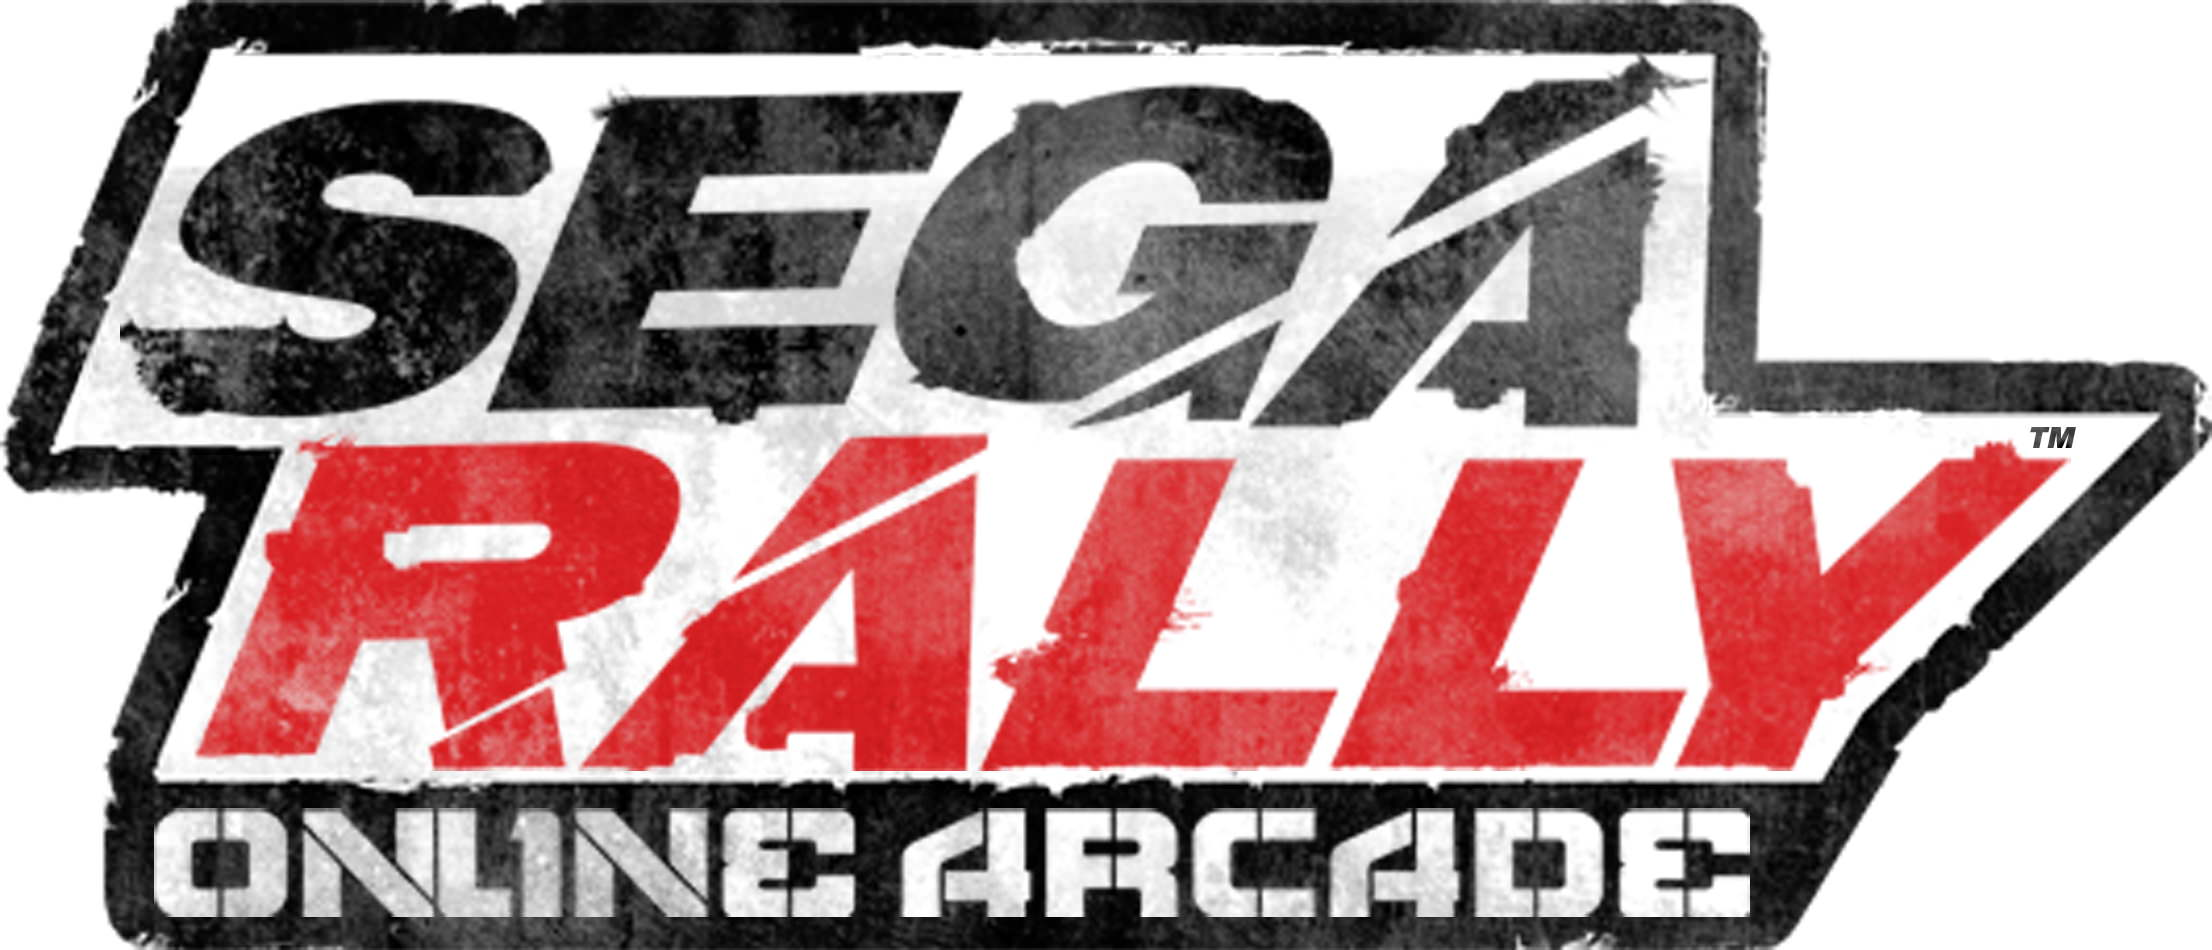 SEGA Rally online arcade disponible!